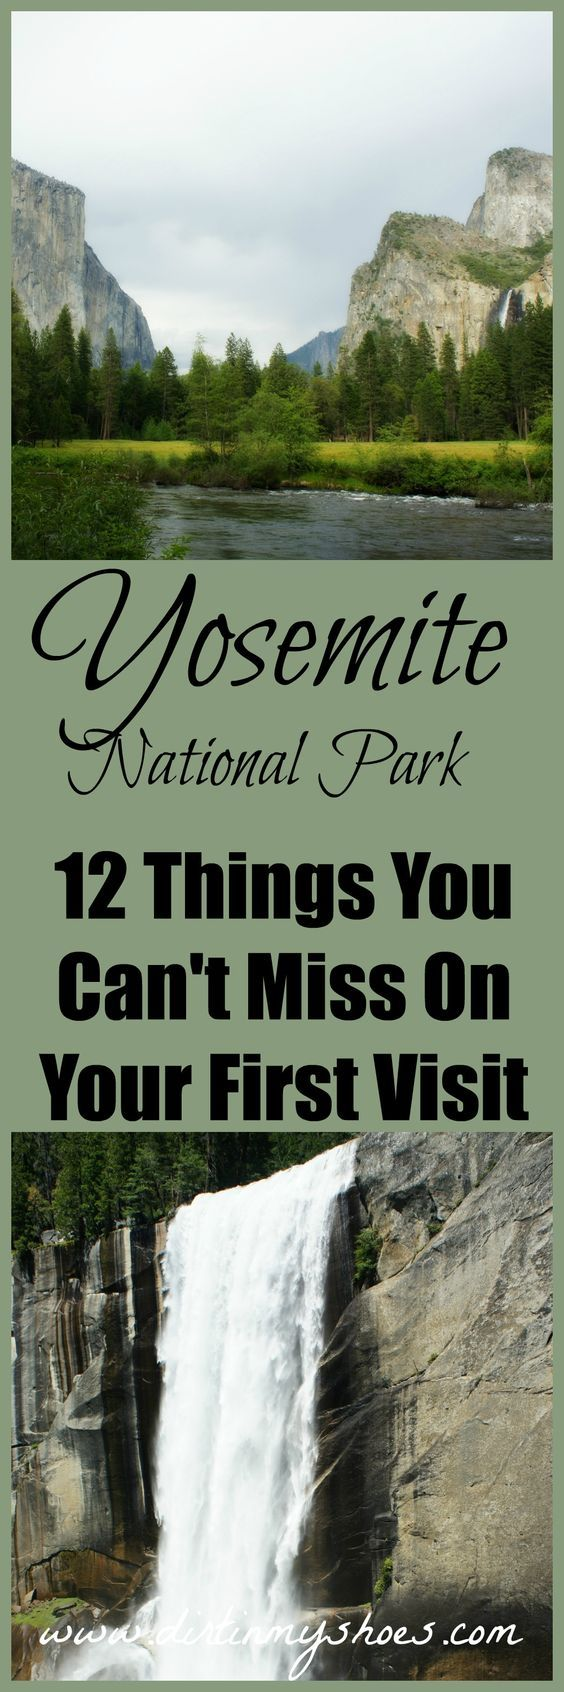 #GoAltaCA | 12 things you absolutely can't miss in Yosemite -- this list has it all! Hikes, lakes, and viewpoints for every visitor to Yosemite National Park. Don't travel without this list (written by a former park ranger)!